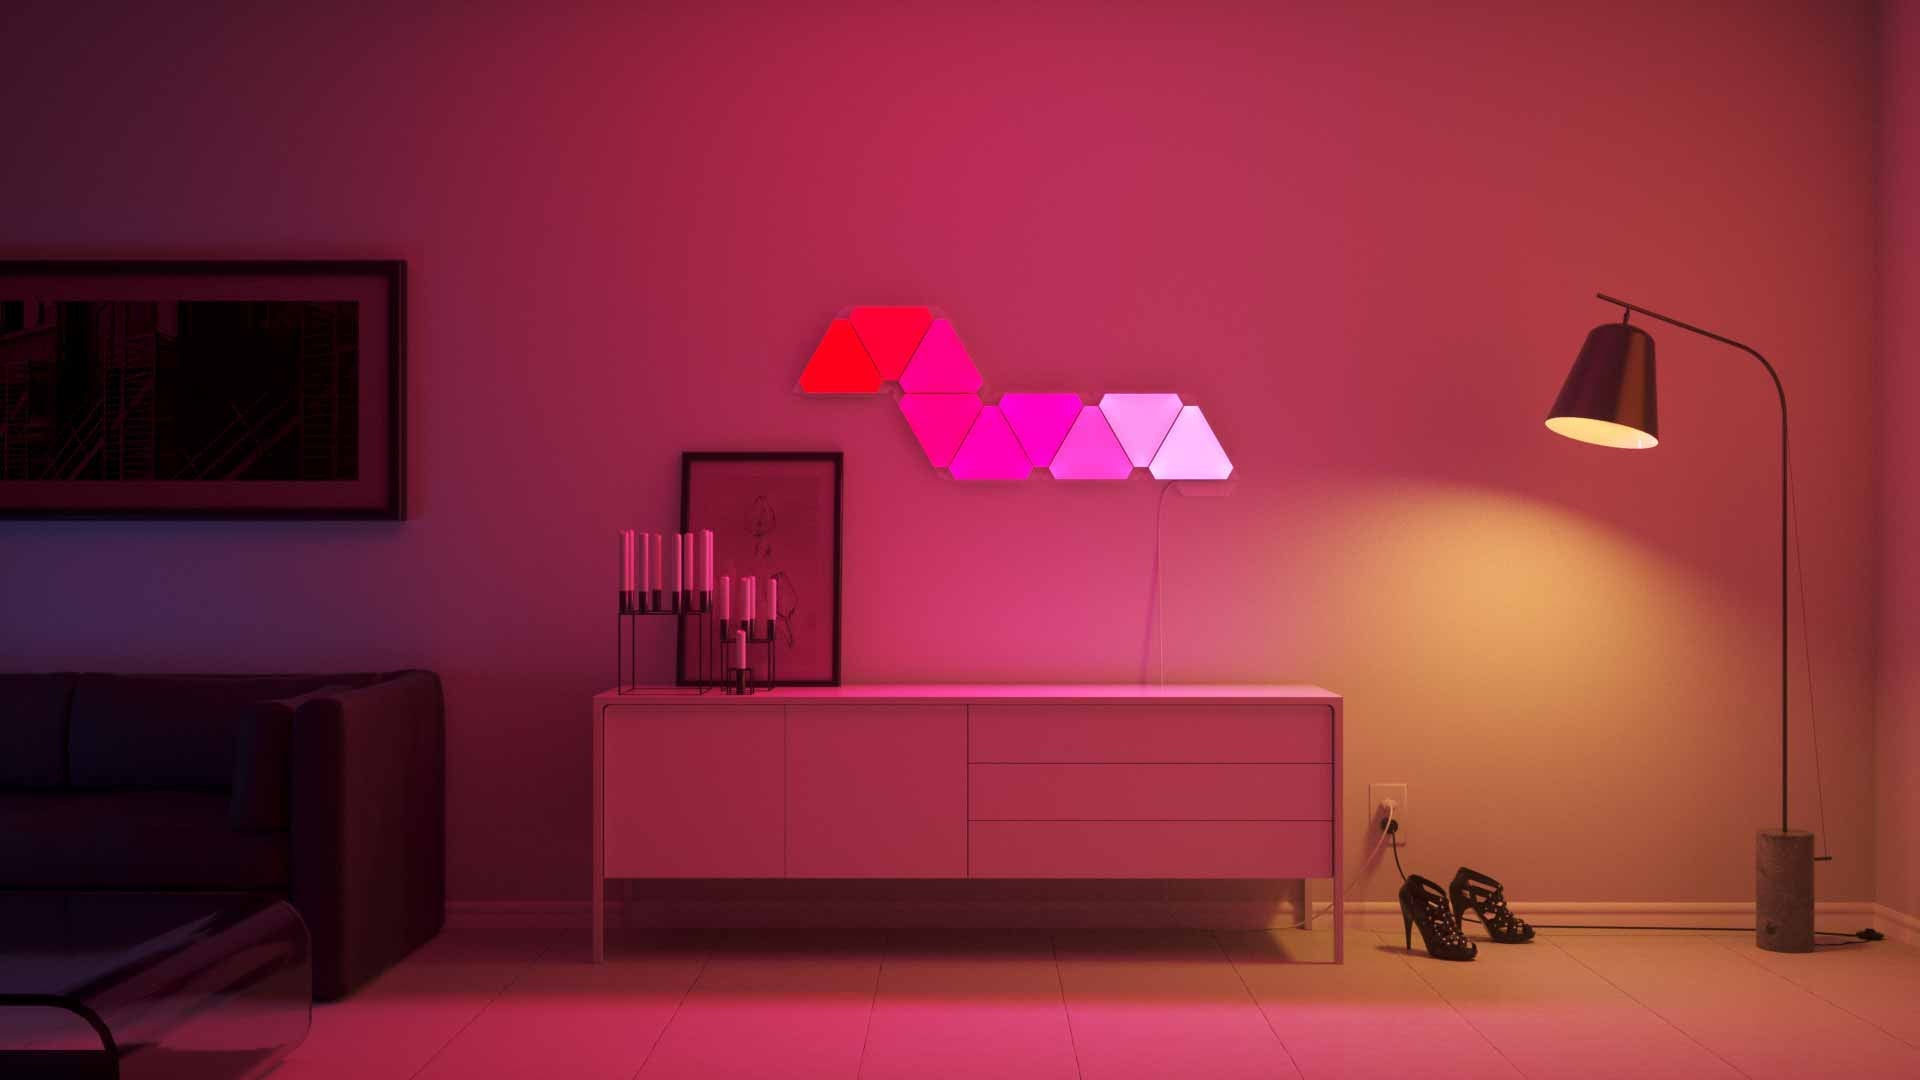 Nanoleaf Aurora India, It's the light for you- Color it, Now in India, Nanoleaf Aurora, Aurora, Revolutionary mood lights, Mood lighting, color lights, light panels, Play with colors, Make walls your canvas, Lighting creativity, Living space lights